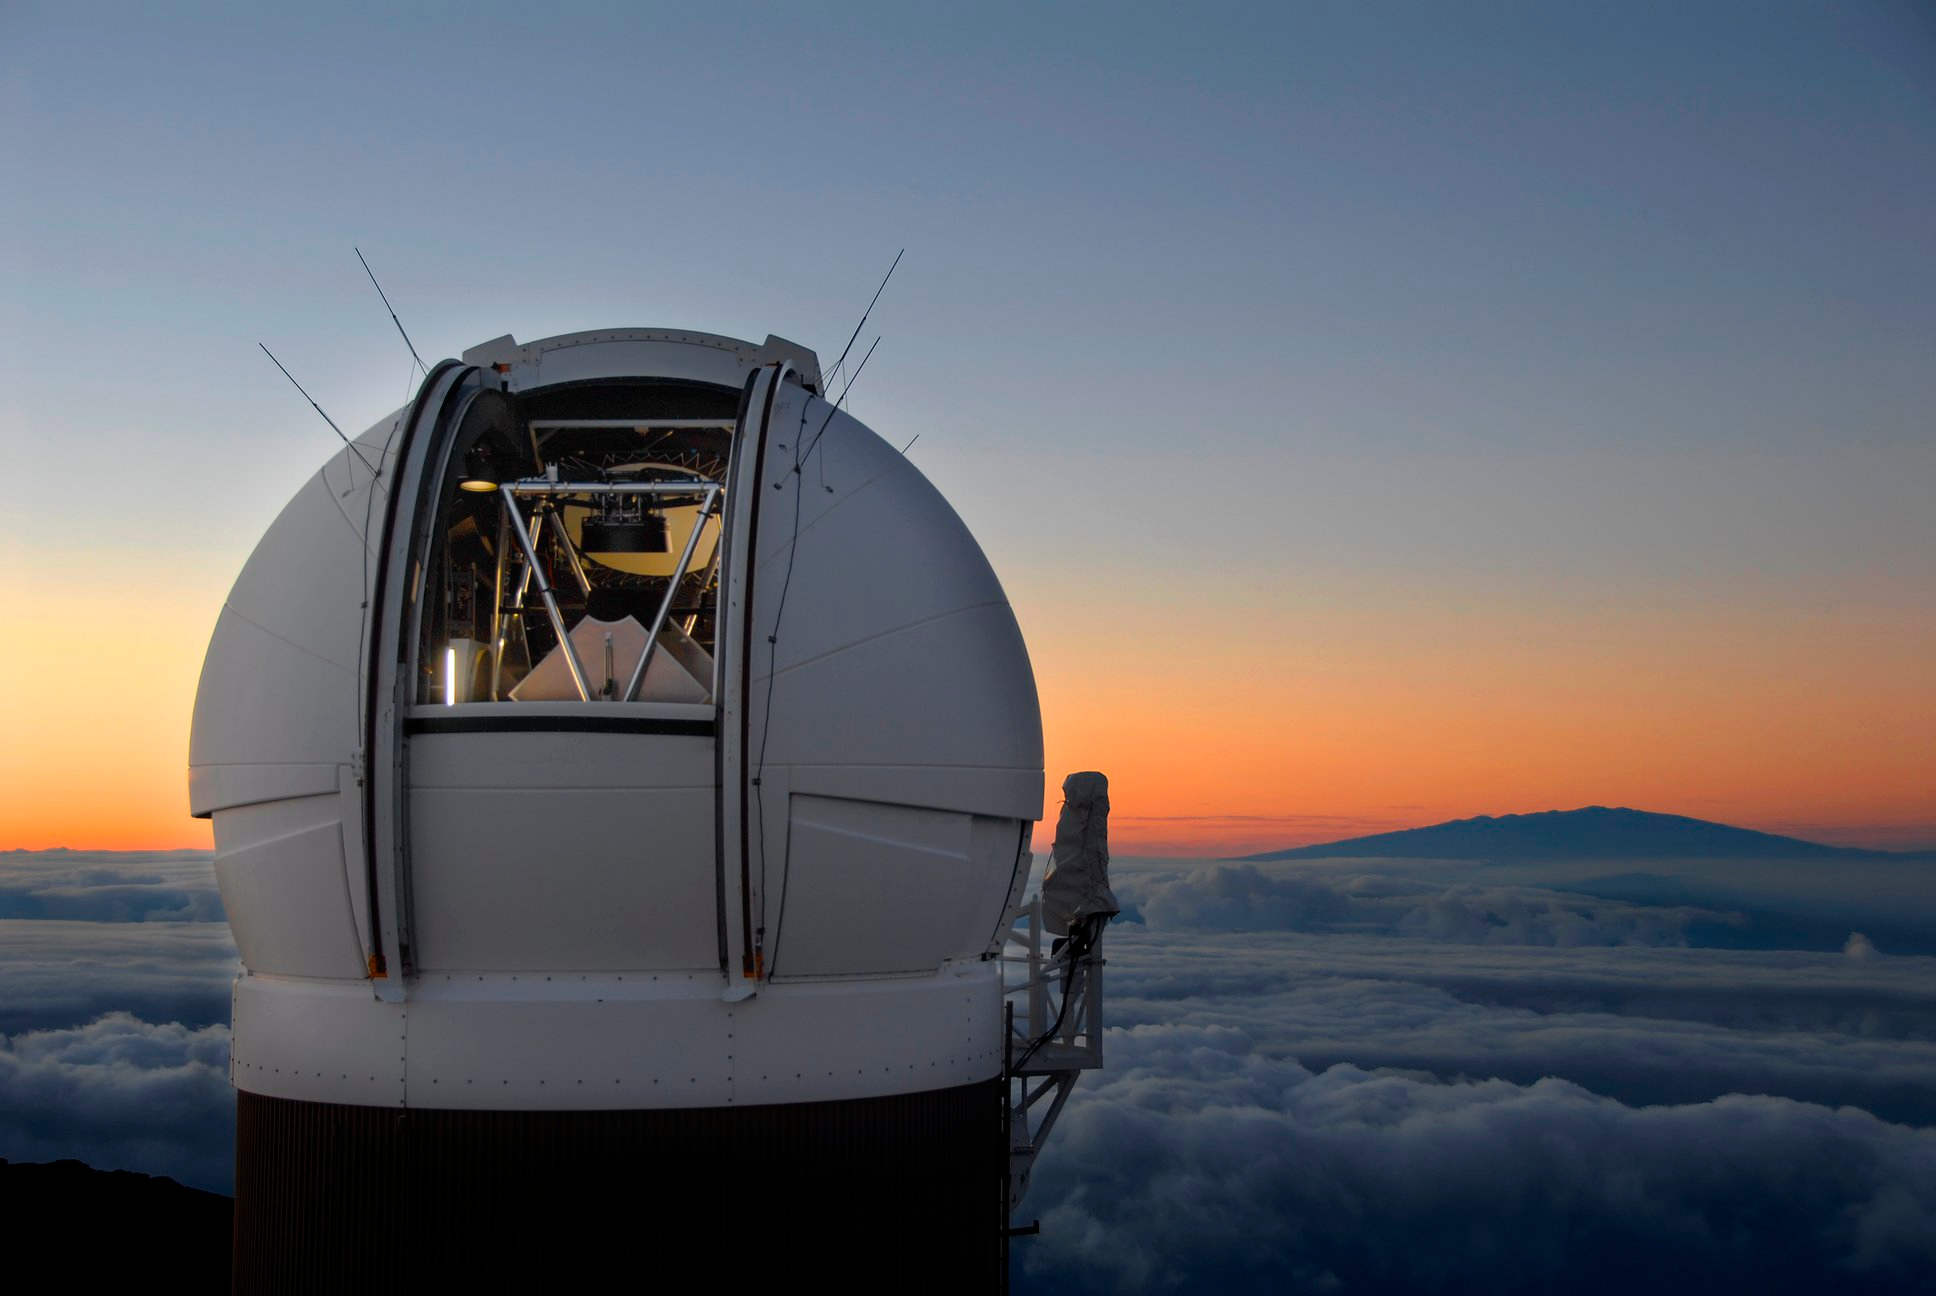 The Pan-STARRS 1 observatory on Haleakala, Maui, Hawaii. The recent Pan-STARRS sky survey set a record for the largest astronomical data release ever when the second collection was released totaling 1.6 petabytes of data. This survey is able to identify many near-Earth objects by taking snapshots of the same patch of sky. Credit: PS1SC.